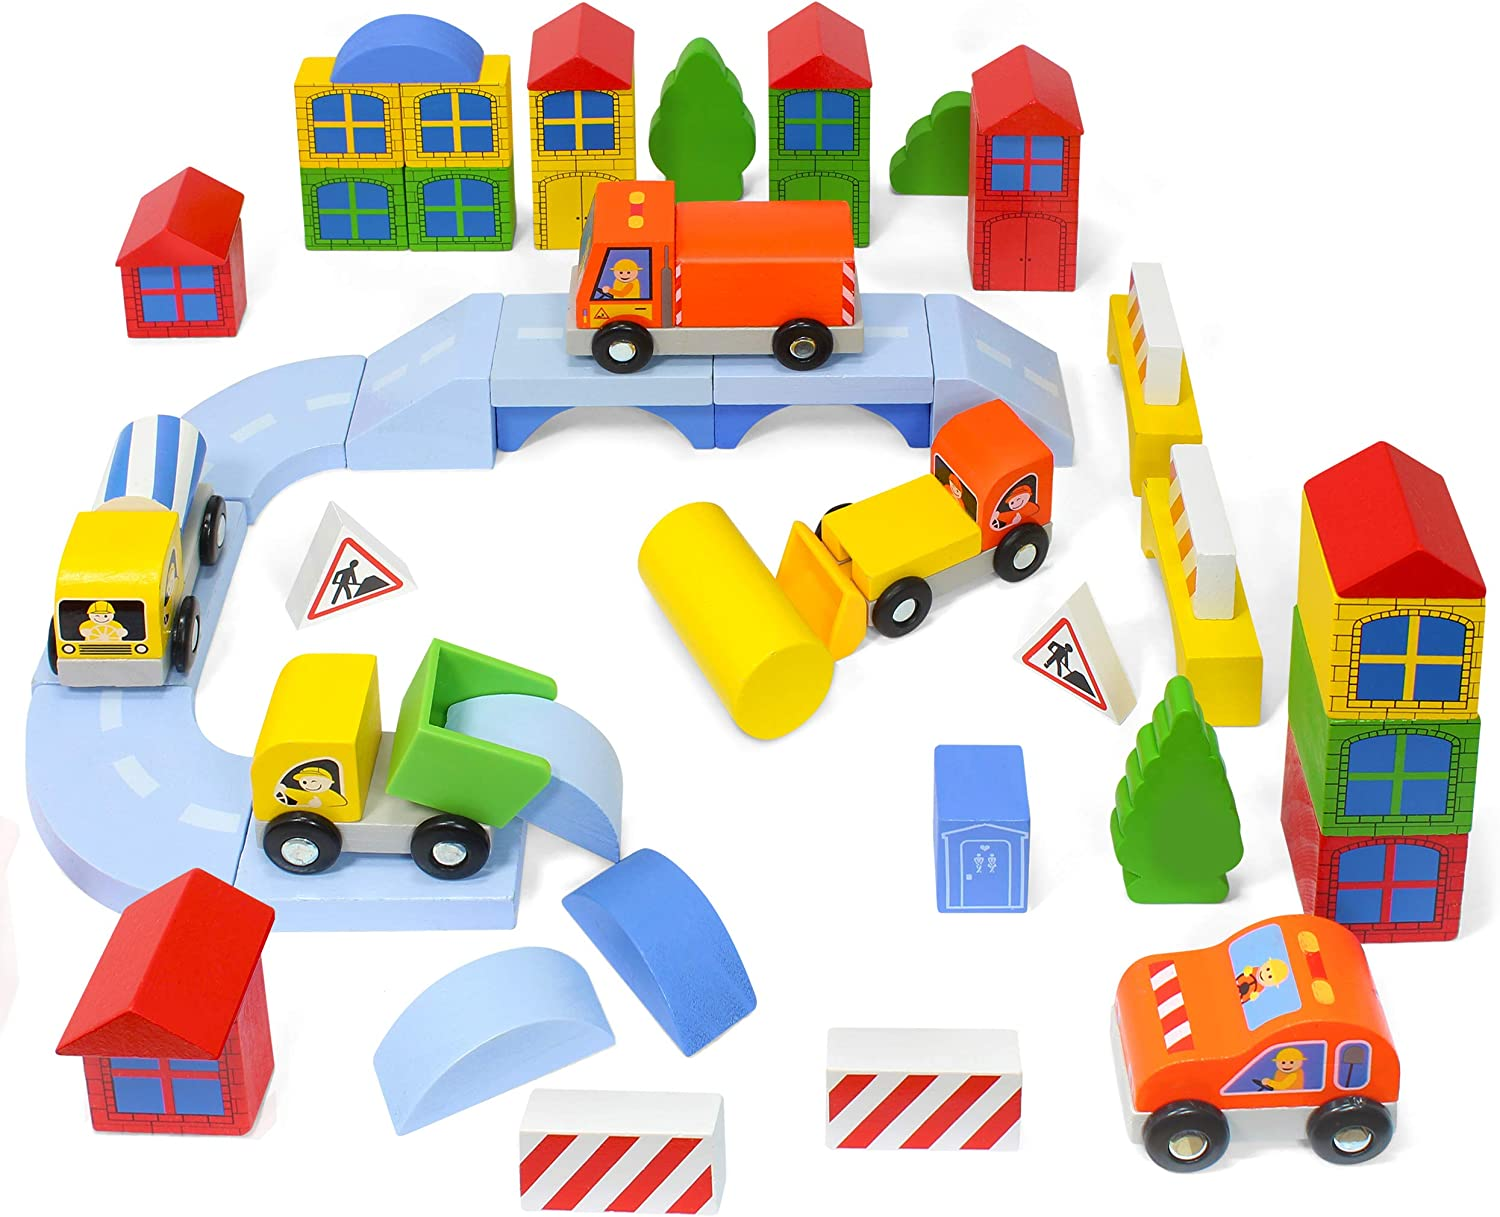 Kidzlane Wooden Construction Site Building Blocks - 50 Pc Wood Block Variety Set with Vehicles, Bridge + More in Storage Bucket - Brightly Painted, Safe & Non-Toxic for Toddlers & Kids Ages 3+